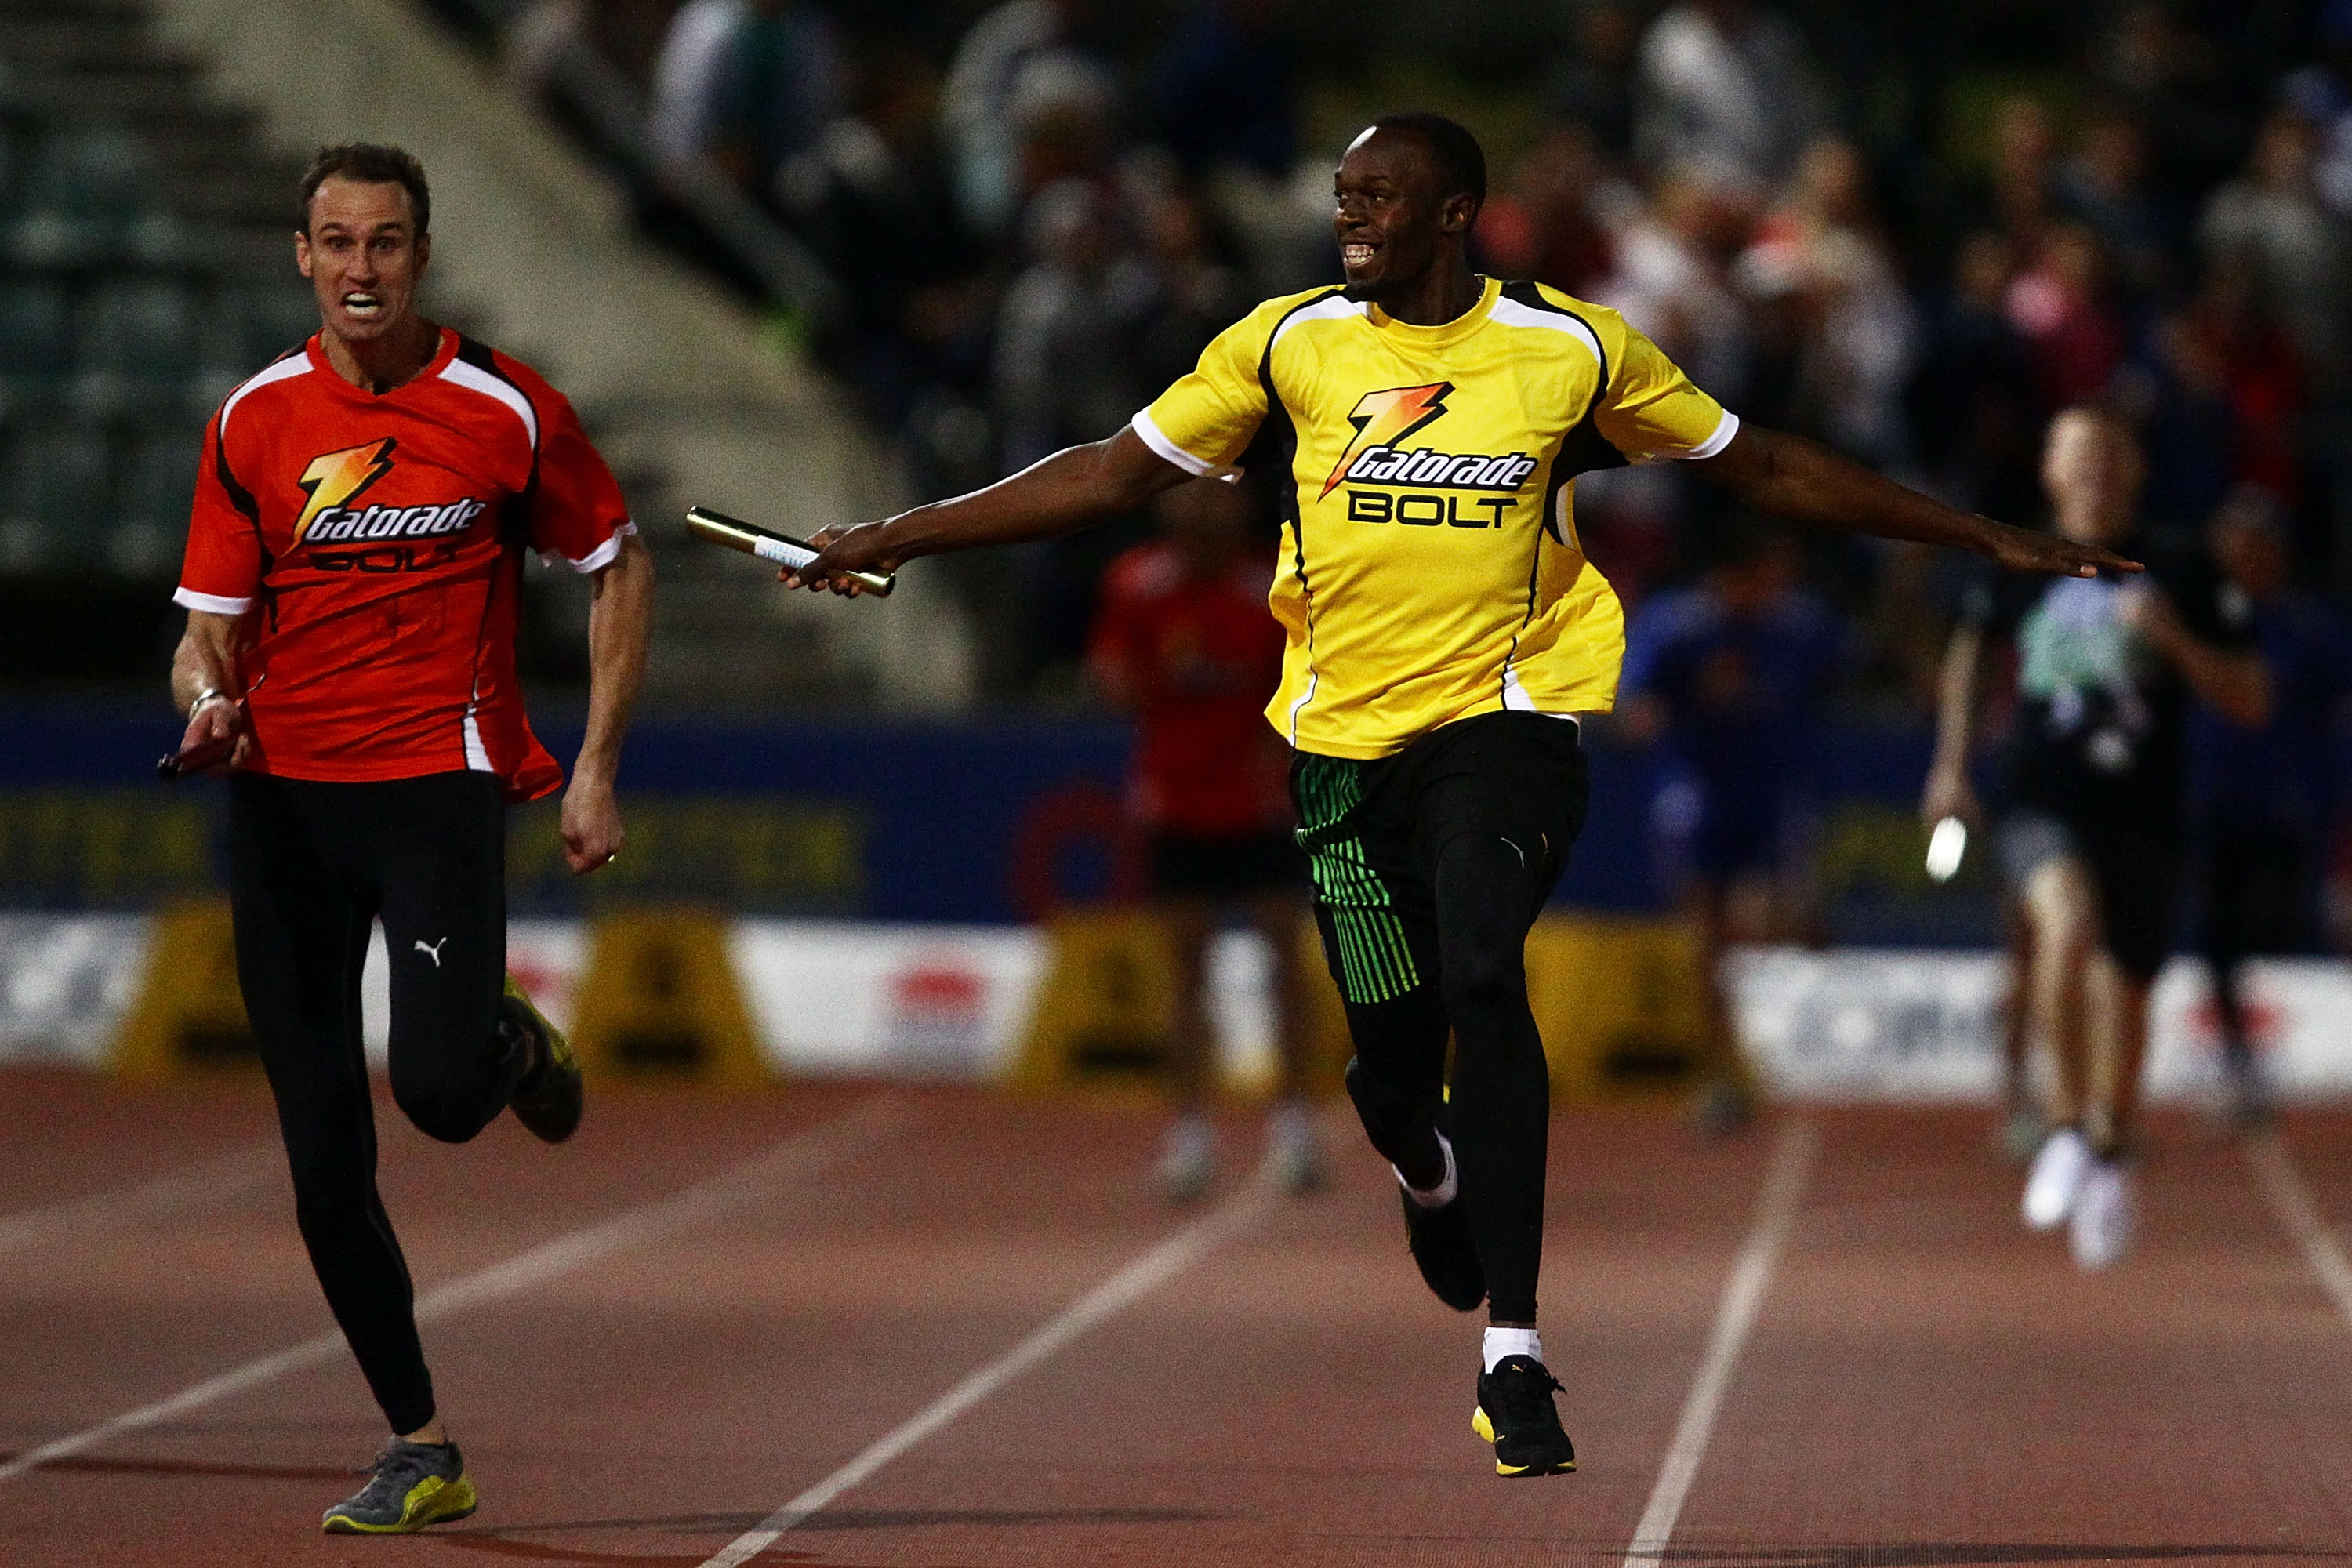 SYDNEY, AUSTRALIA - SEPTEMBER 15:  Usain Bolt (R) of Jamaica and radio personality Ryan Fitzgerald (L) run the final leg of the celebrity relay during the Athletic Allstars Meet at Sydney Olympic Park Athletic Centre on September 15, 2010 in Sydney, Austr